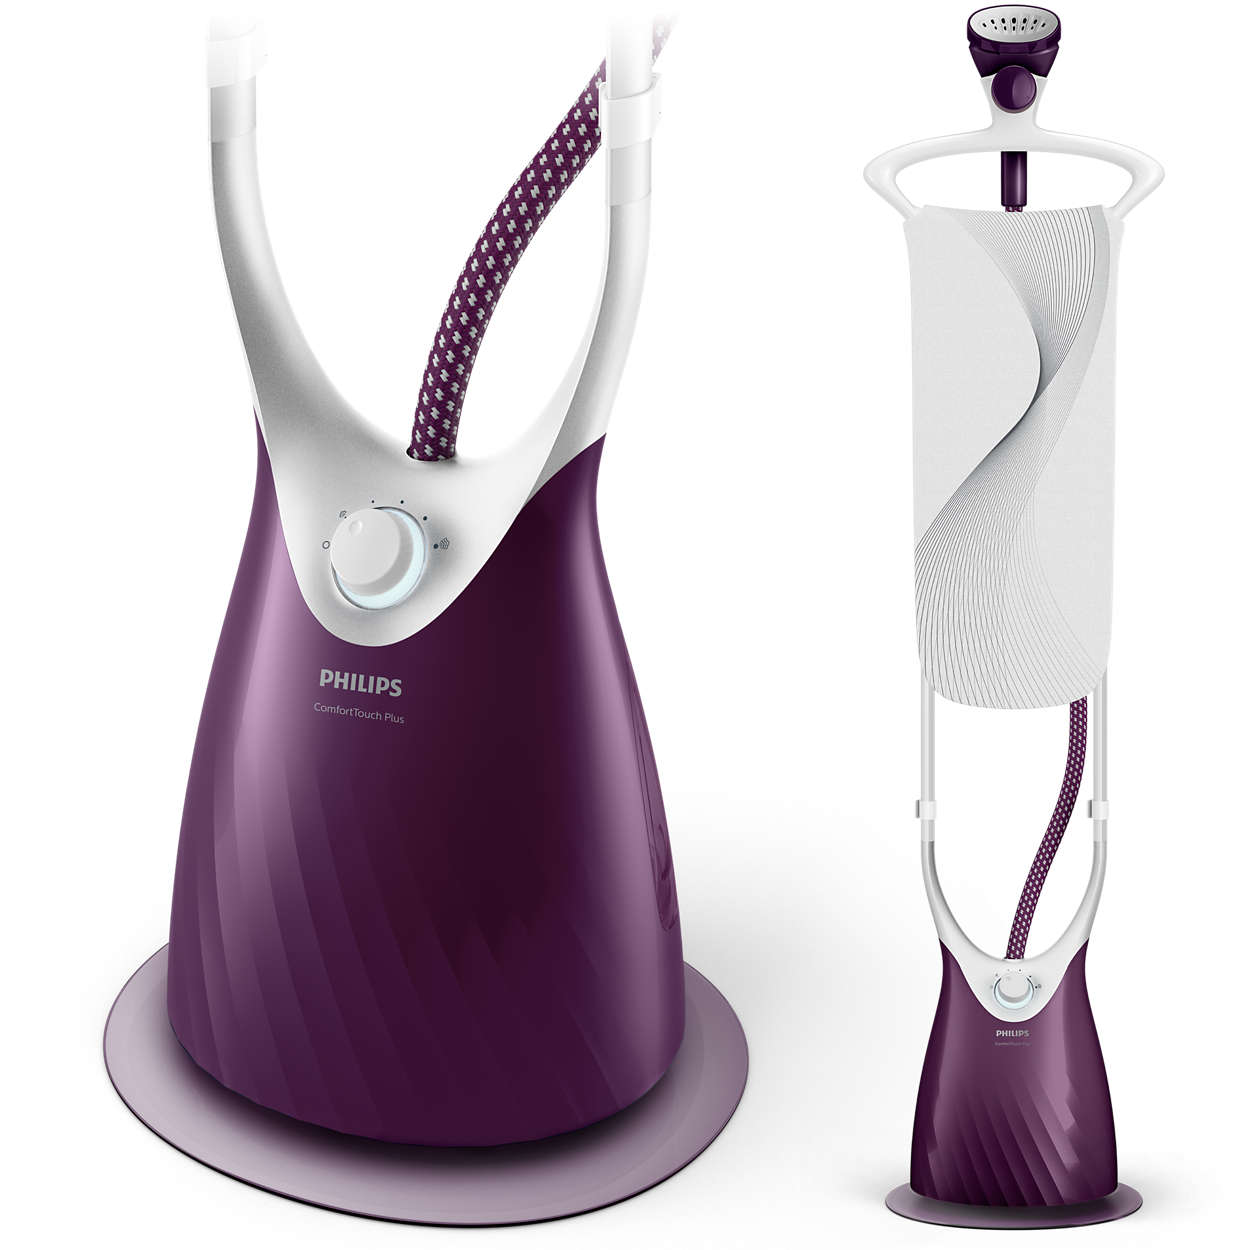 ComfortTouch Plus Garment Steamer GC558/36 | Philips